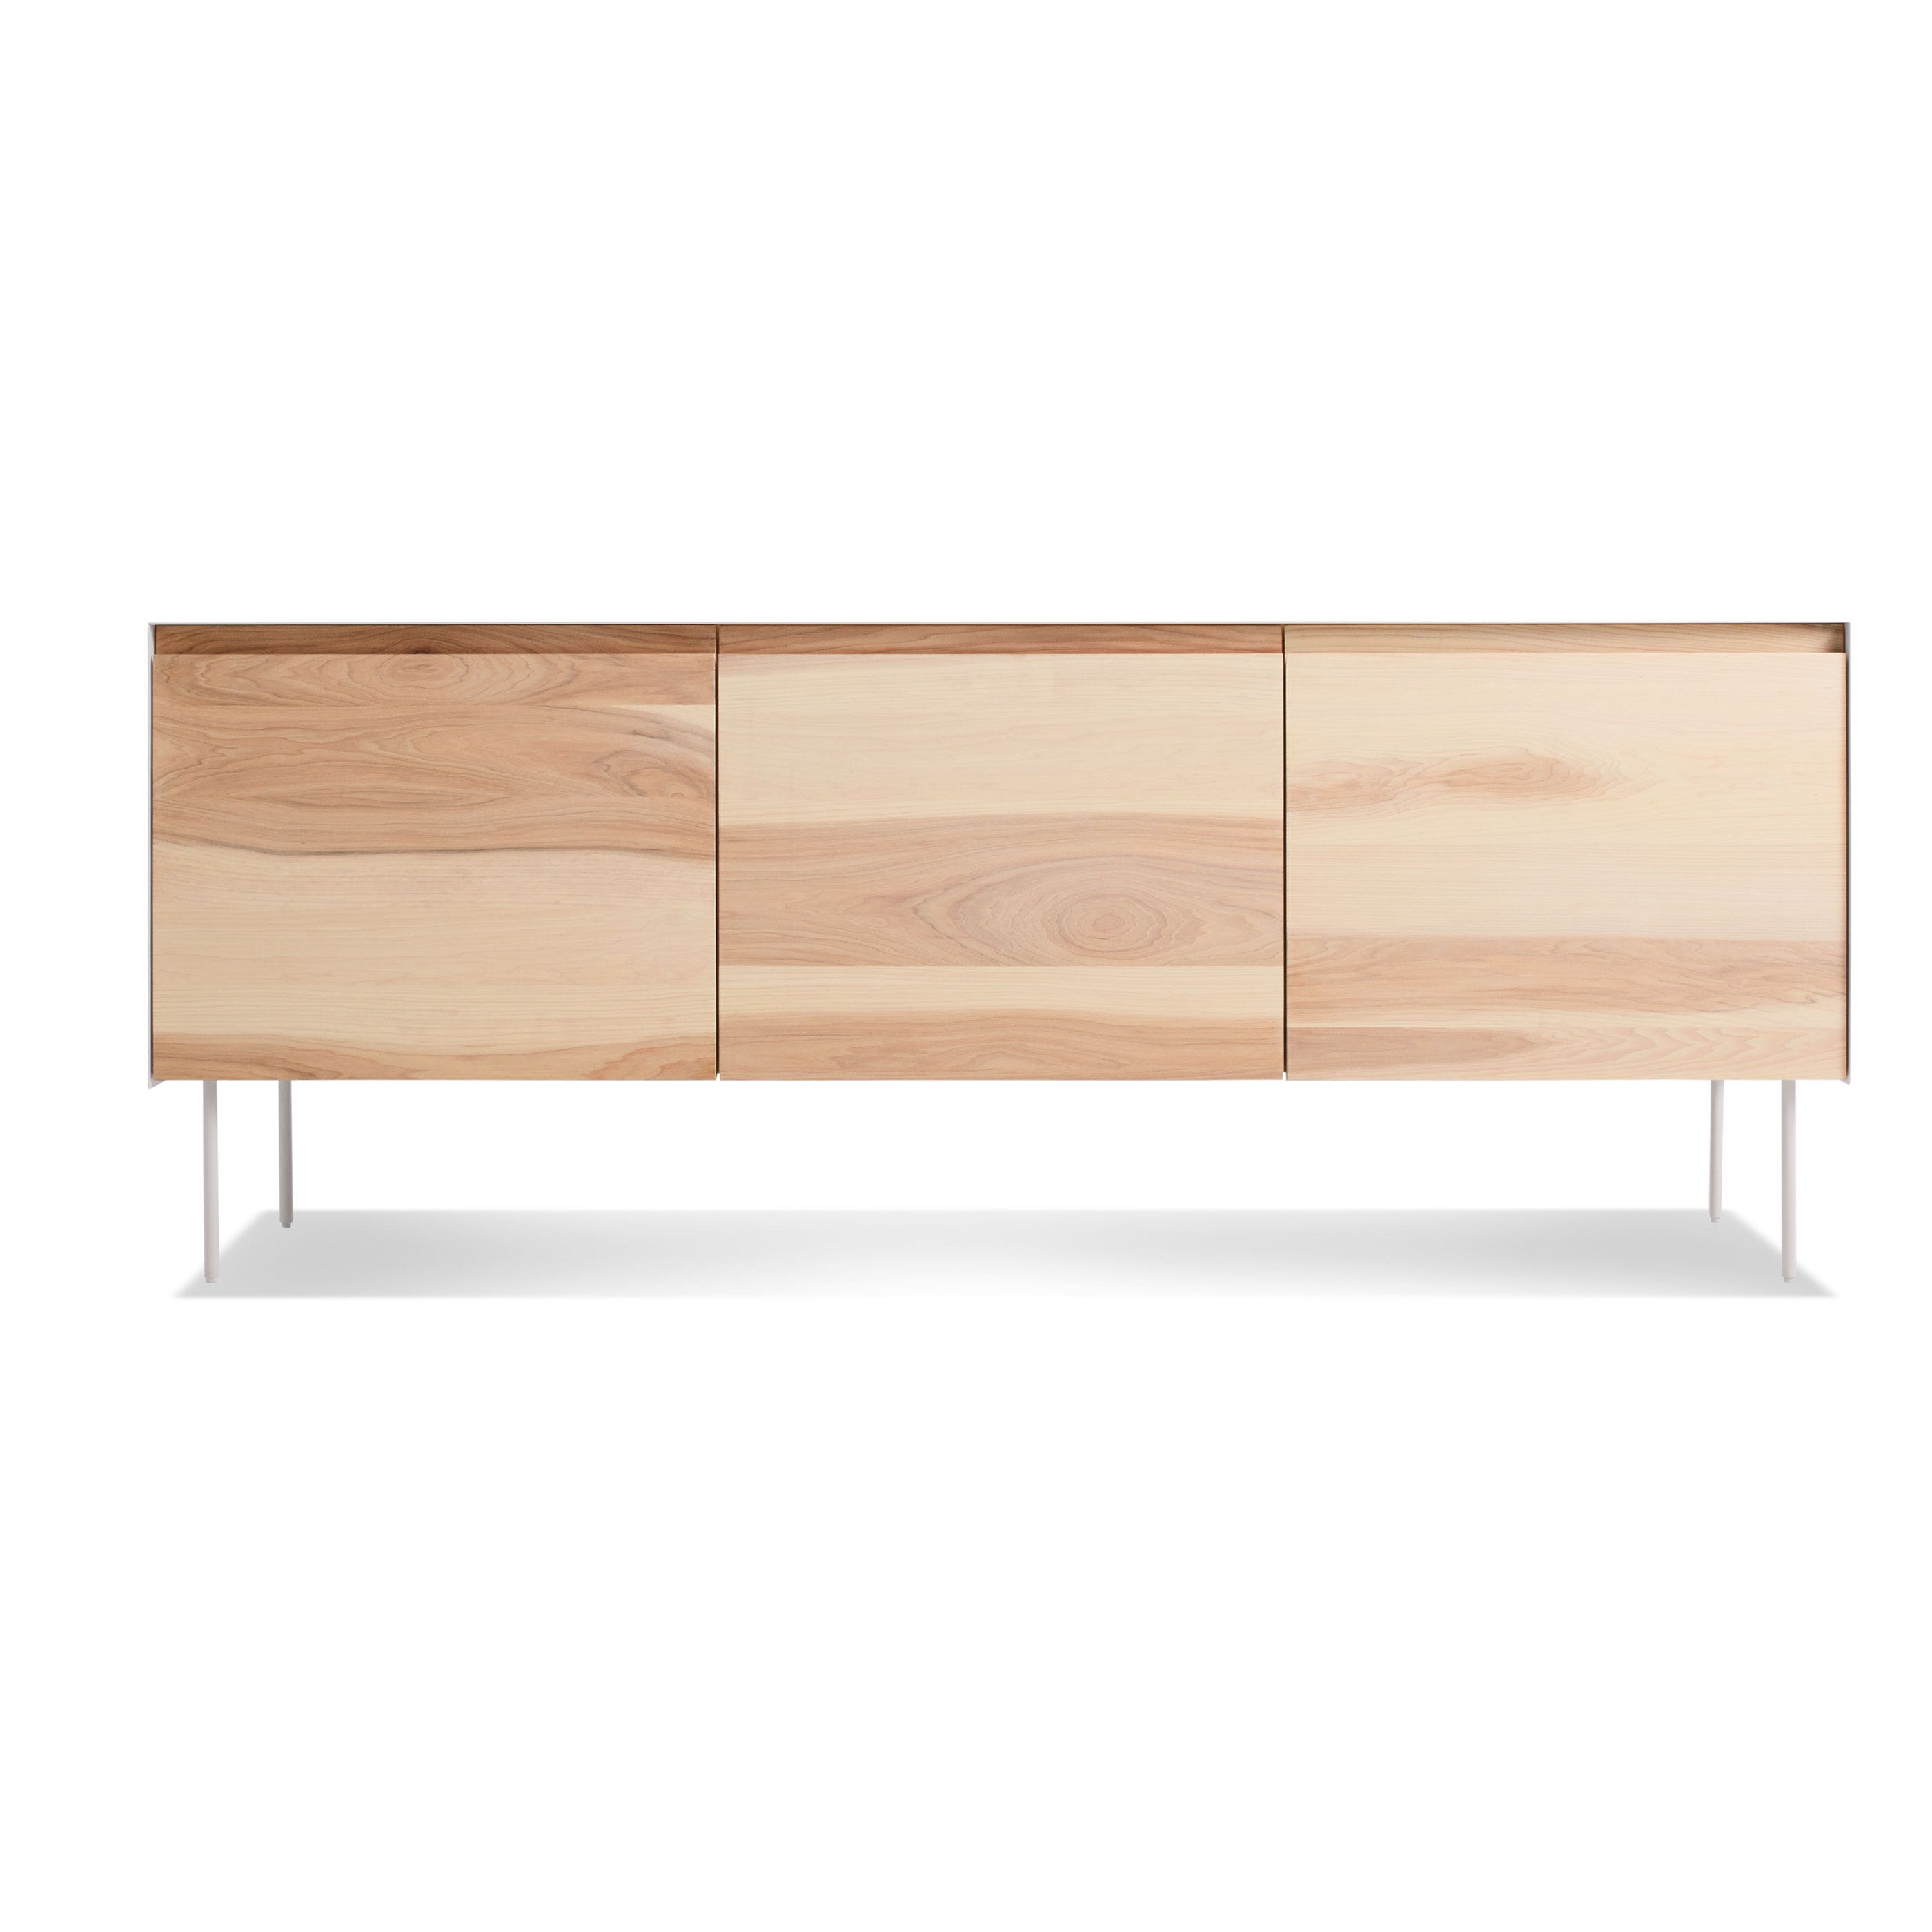 Cadenza Furniture. Cadenza Furniture. Clad 3 Door Credenza Furniture N